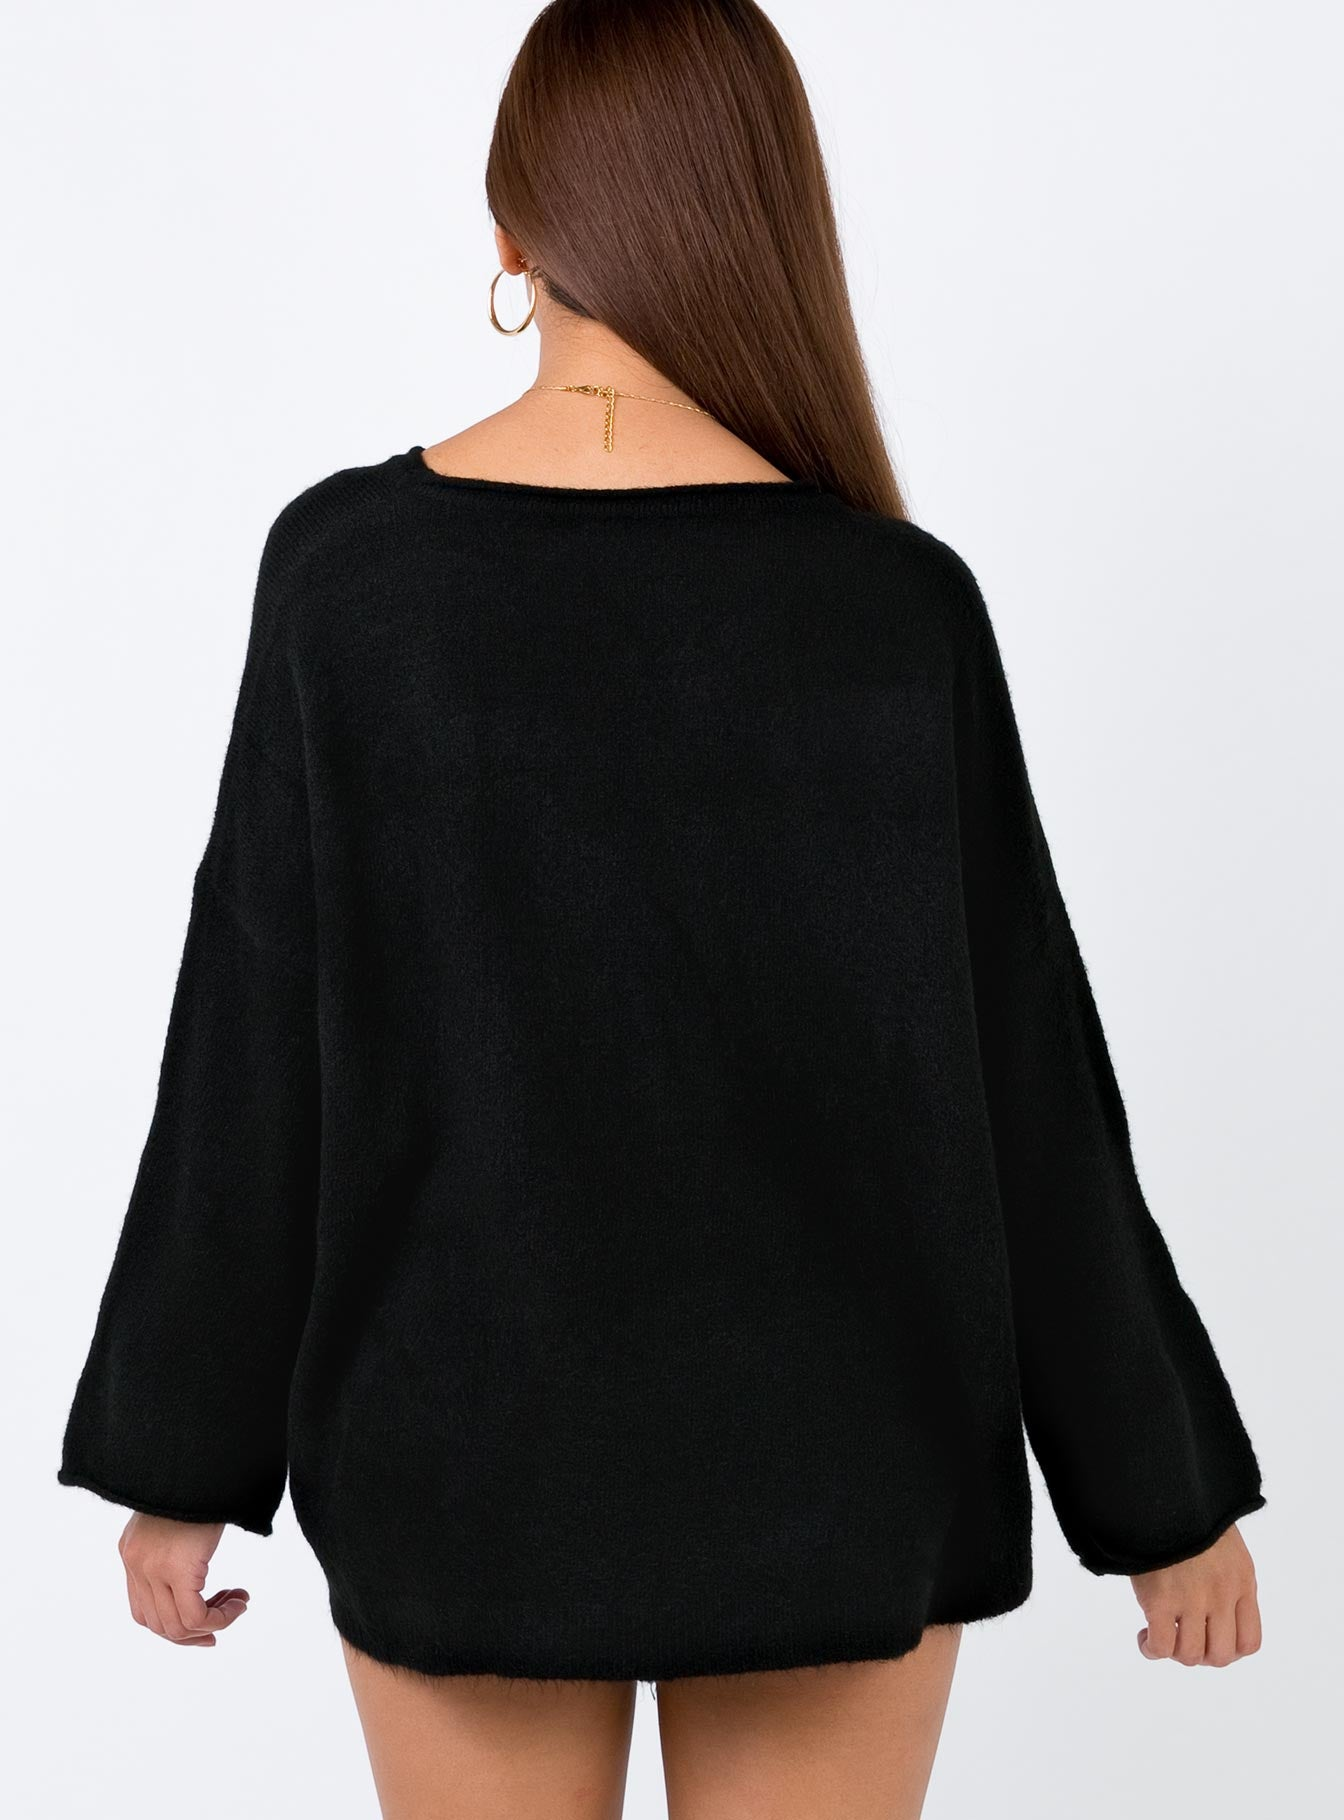 Snuggle Up Jumper Black